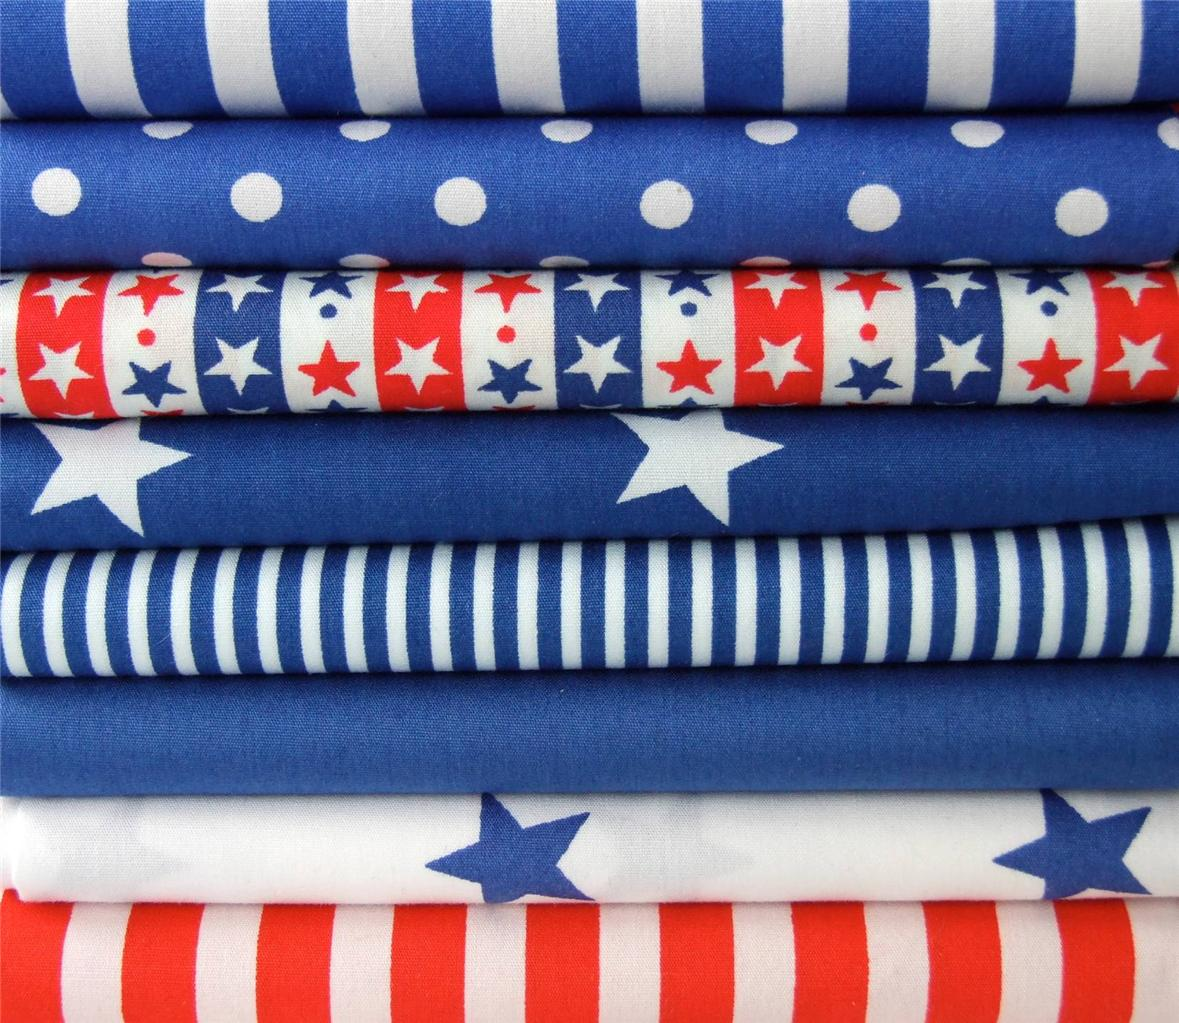 ROYAL-BLUE-white-RED-STARS-STRIPES-SPOTS-100-COTTON-FABRIC-for-crafts-bunting